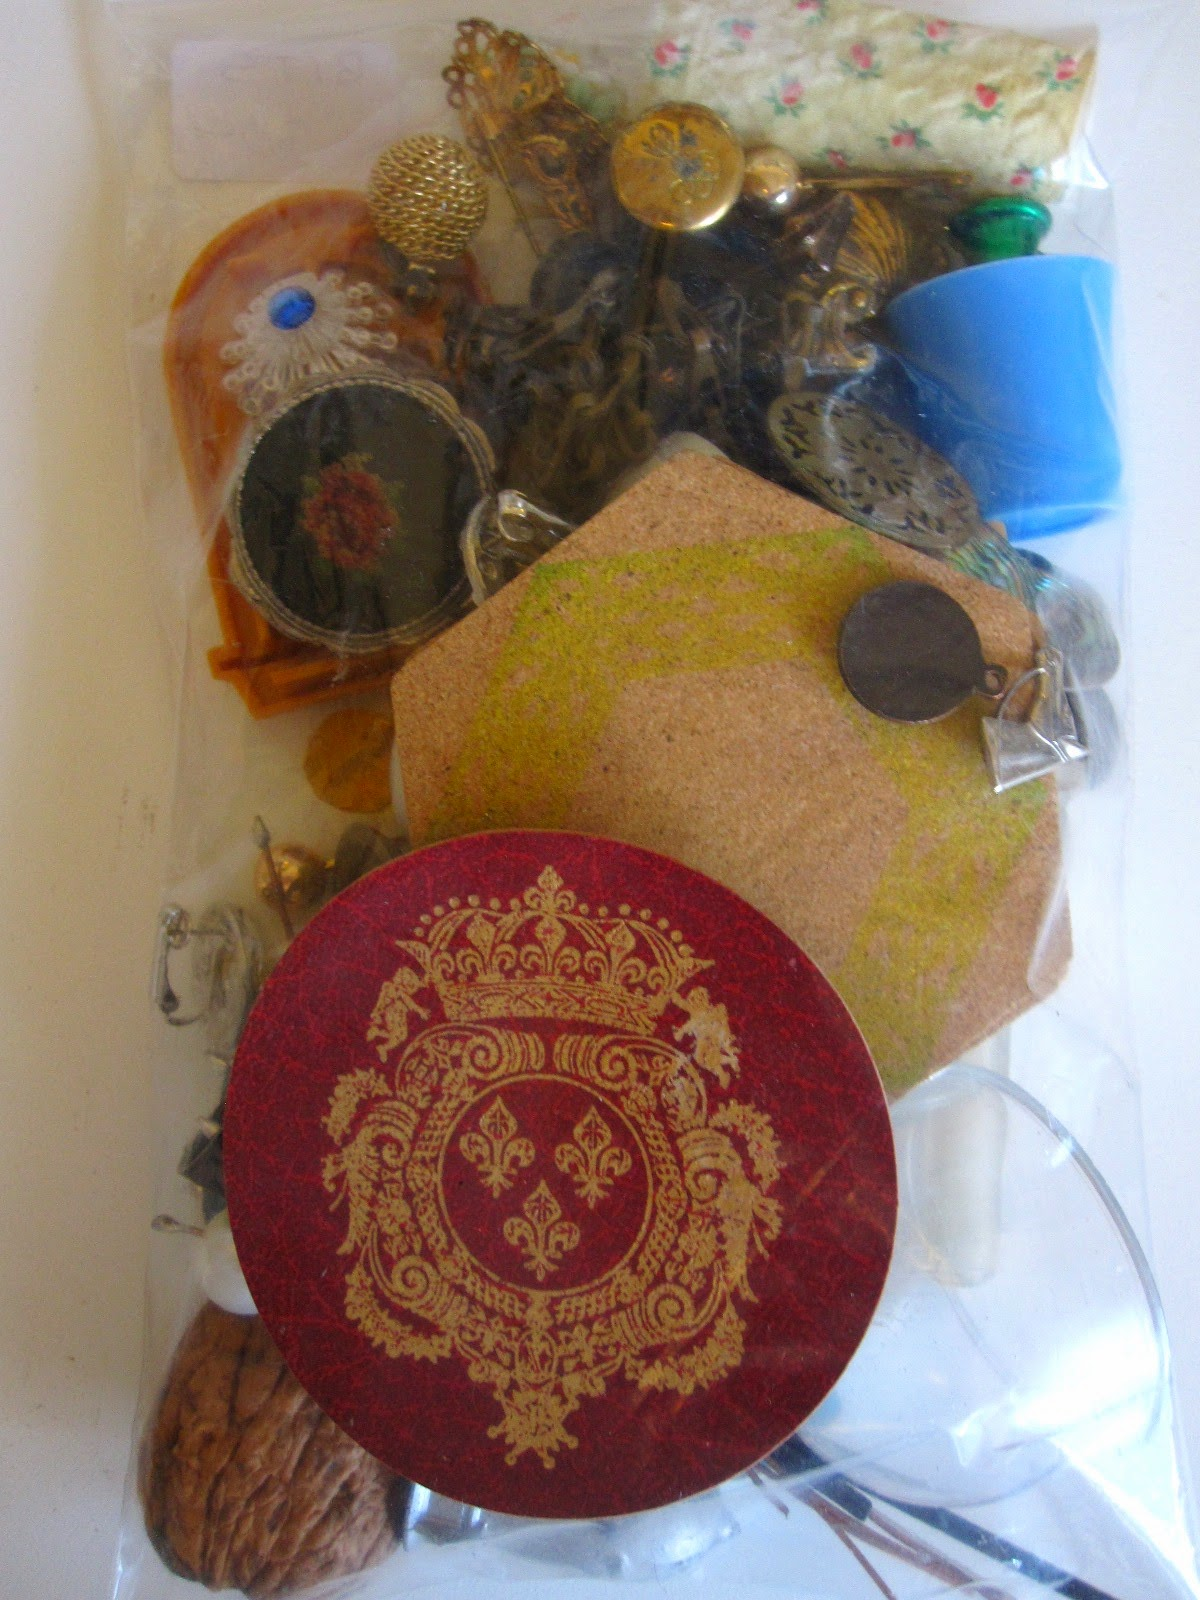 Back of A5-sized bag of bits and bobs for miniature use. Several vintage full-sized coasters are shown, including three octagonal cork coasters.